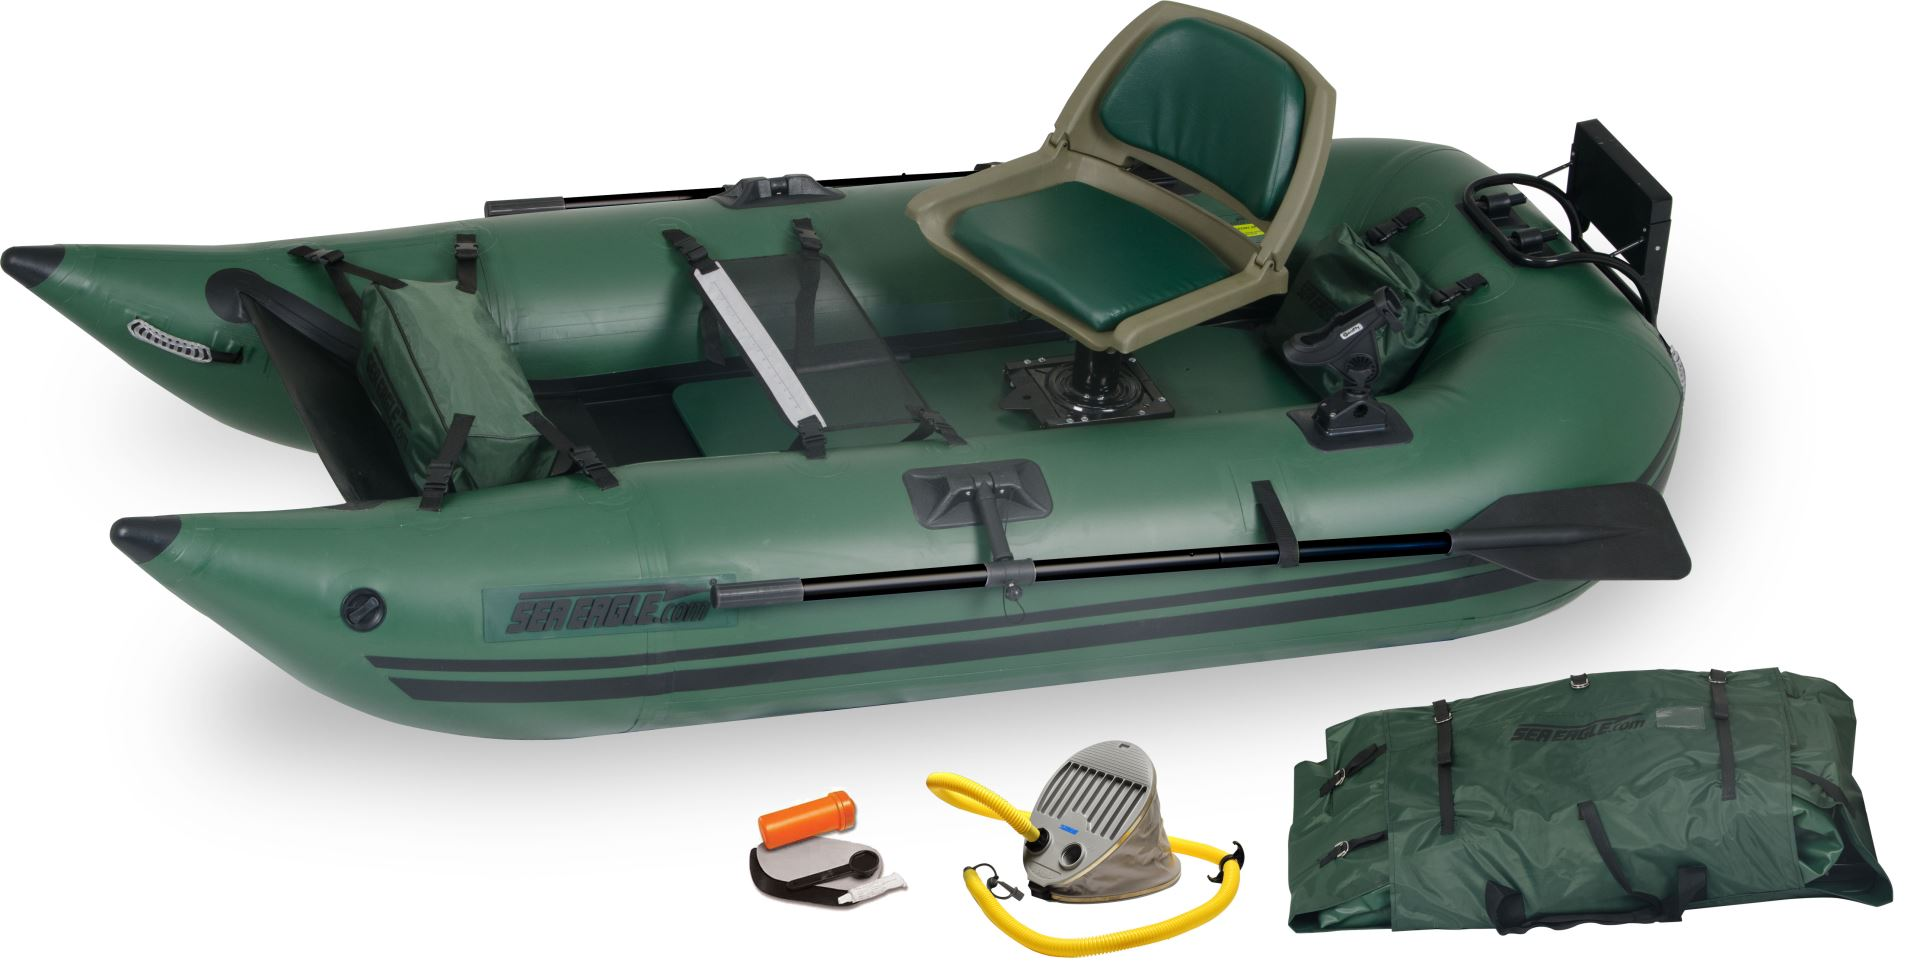 Sea eagle 285fpb 1 person inflatable fishing boats for Inflatable fishing boats